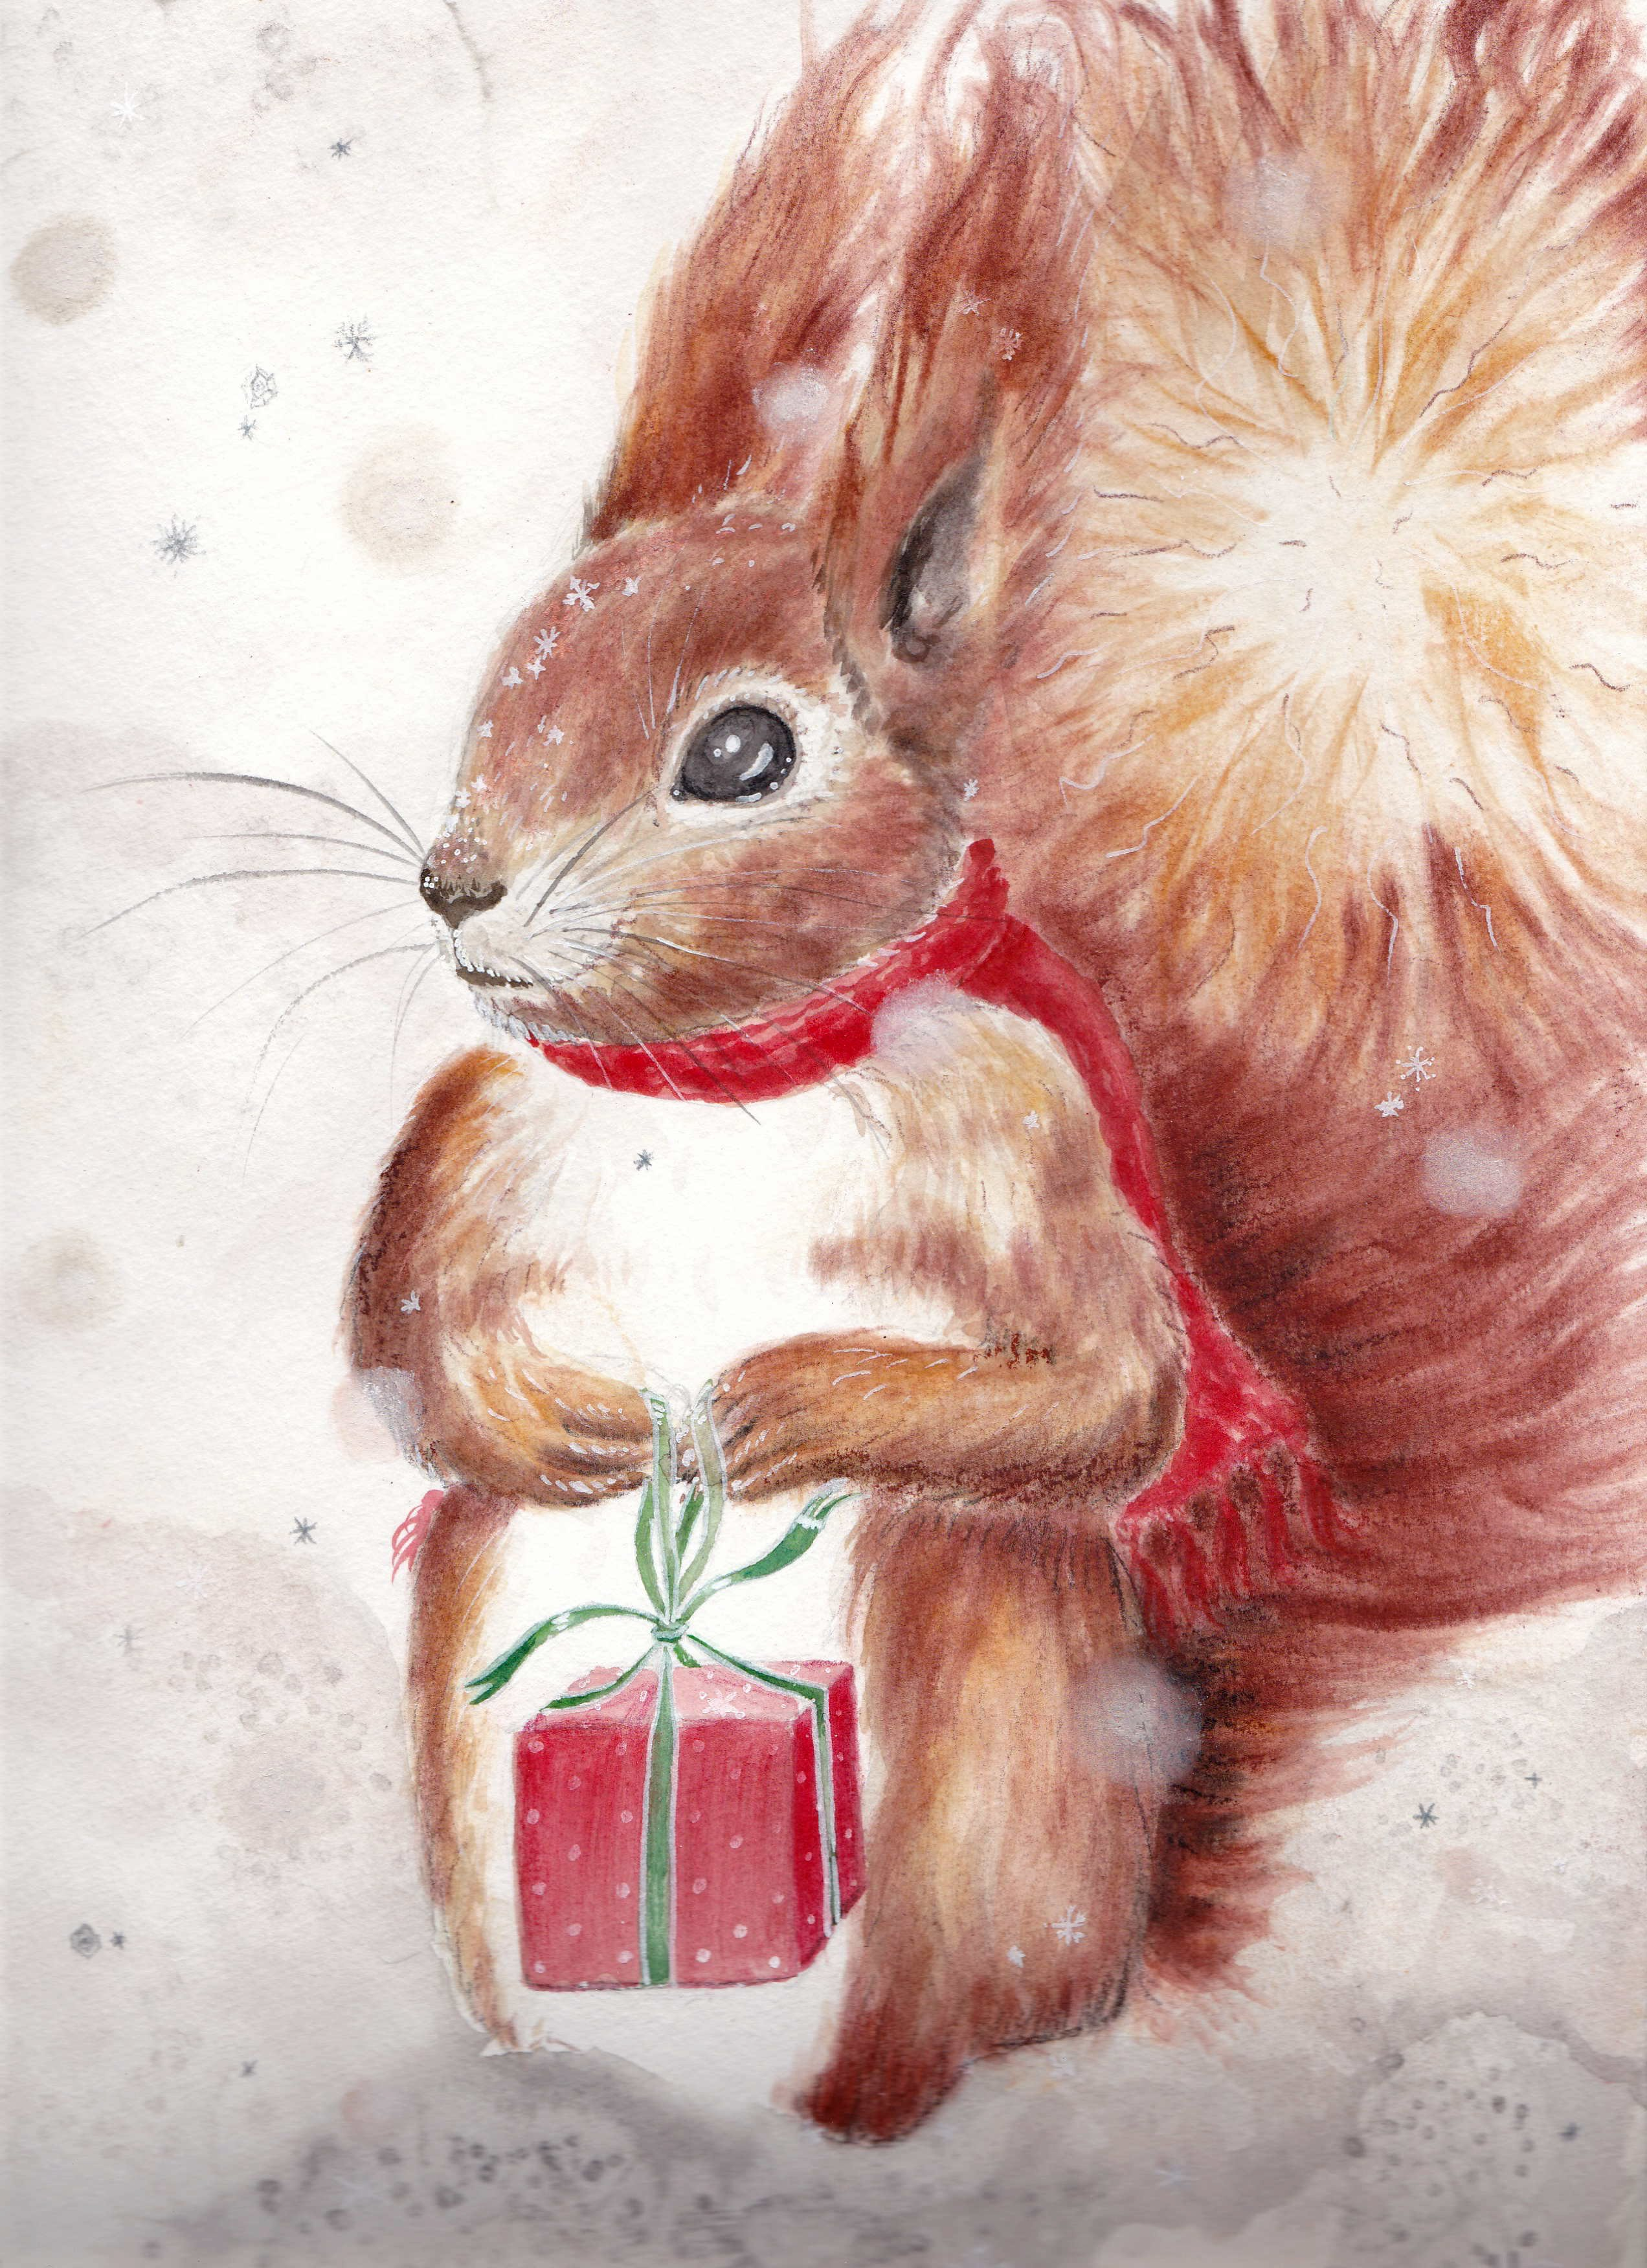 Squirrel with present - Christmas